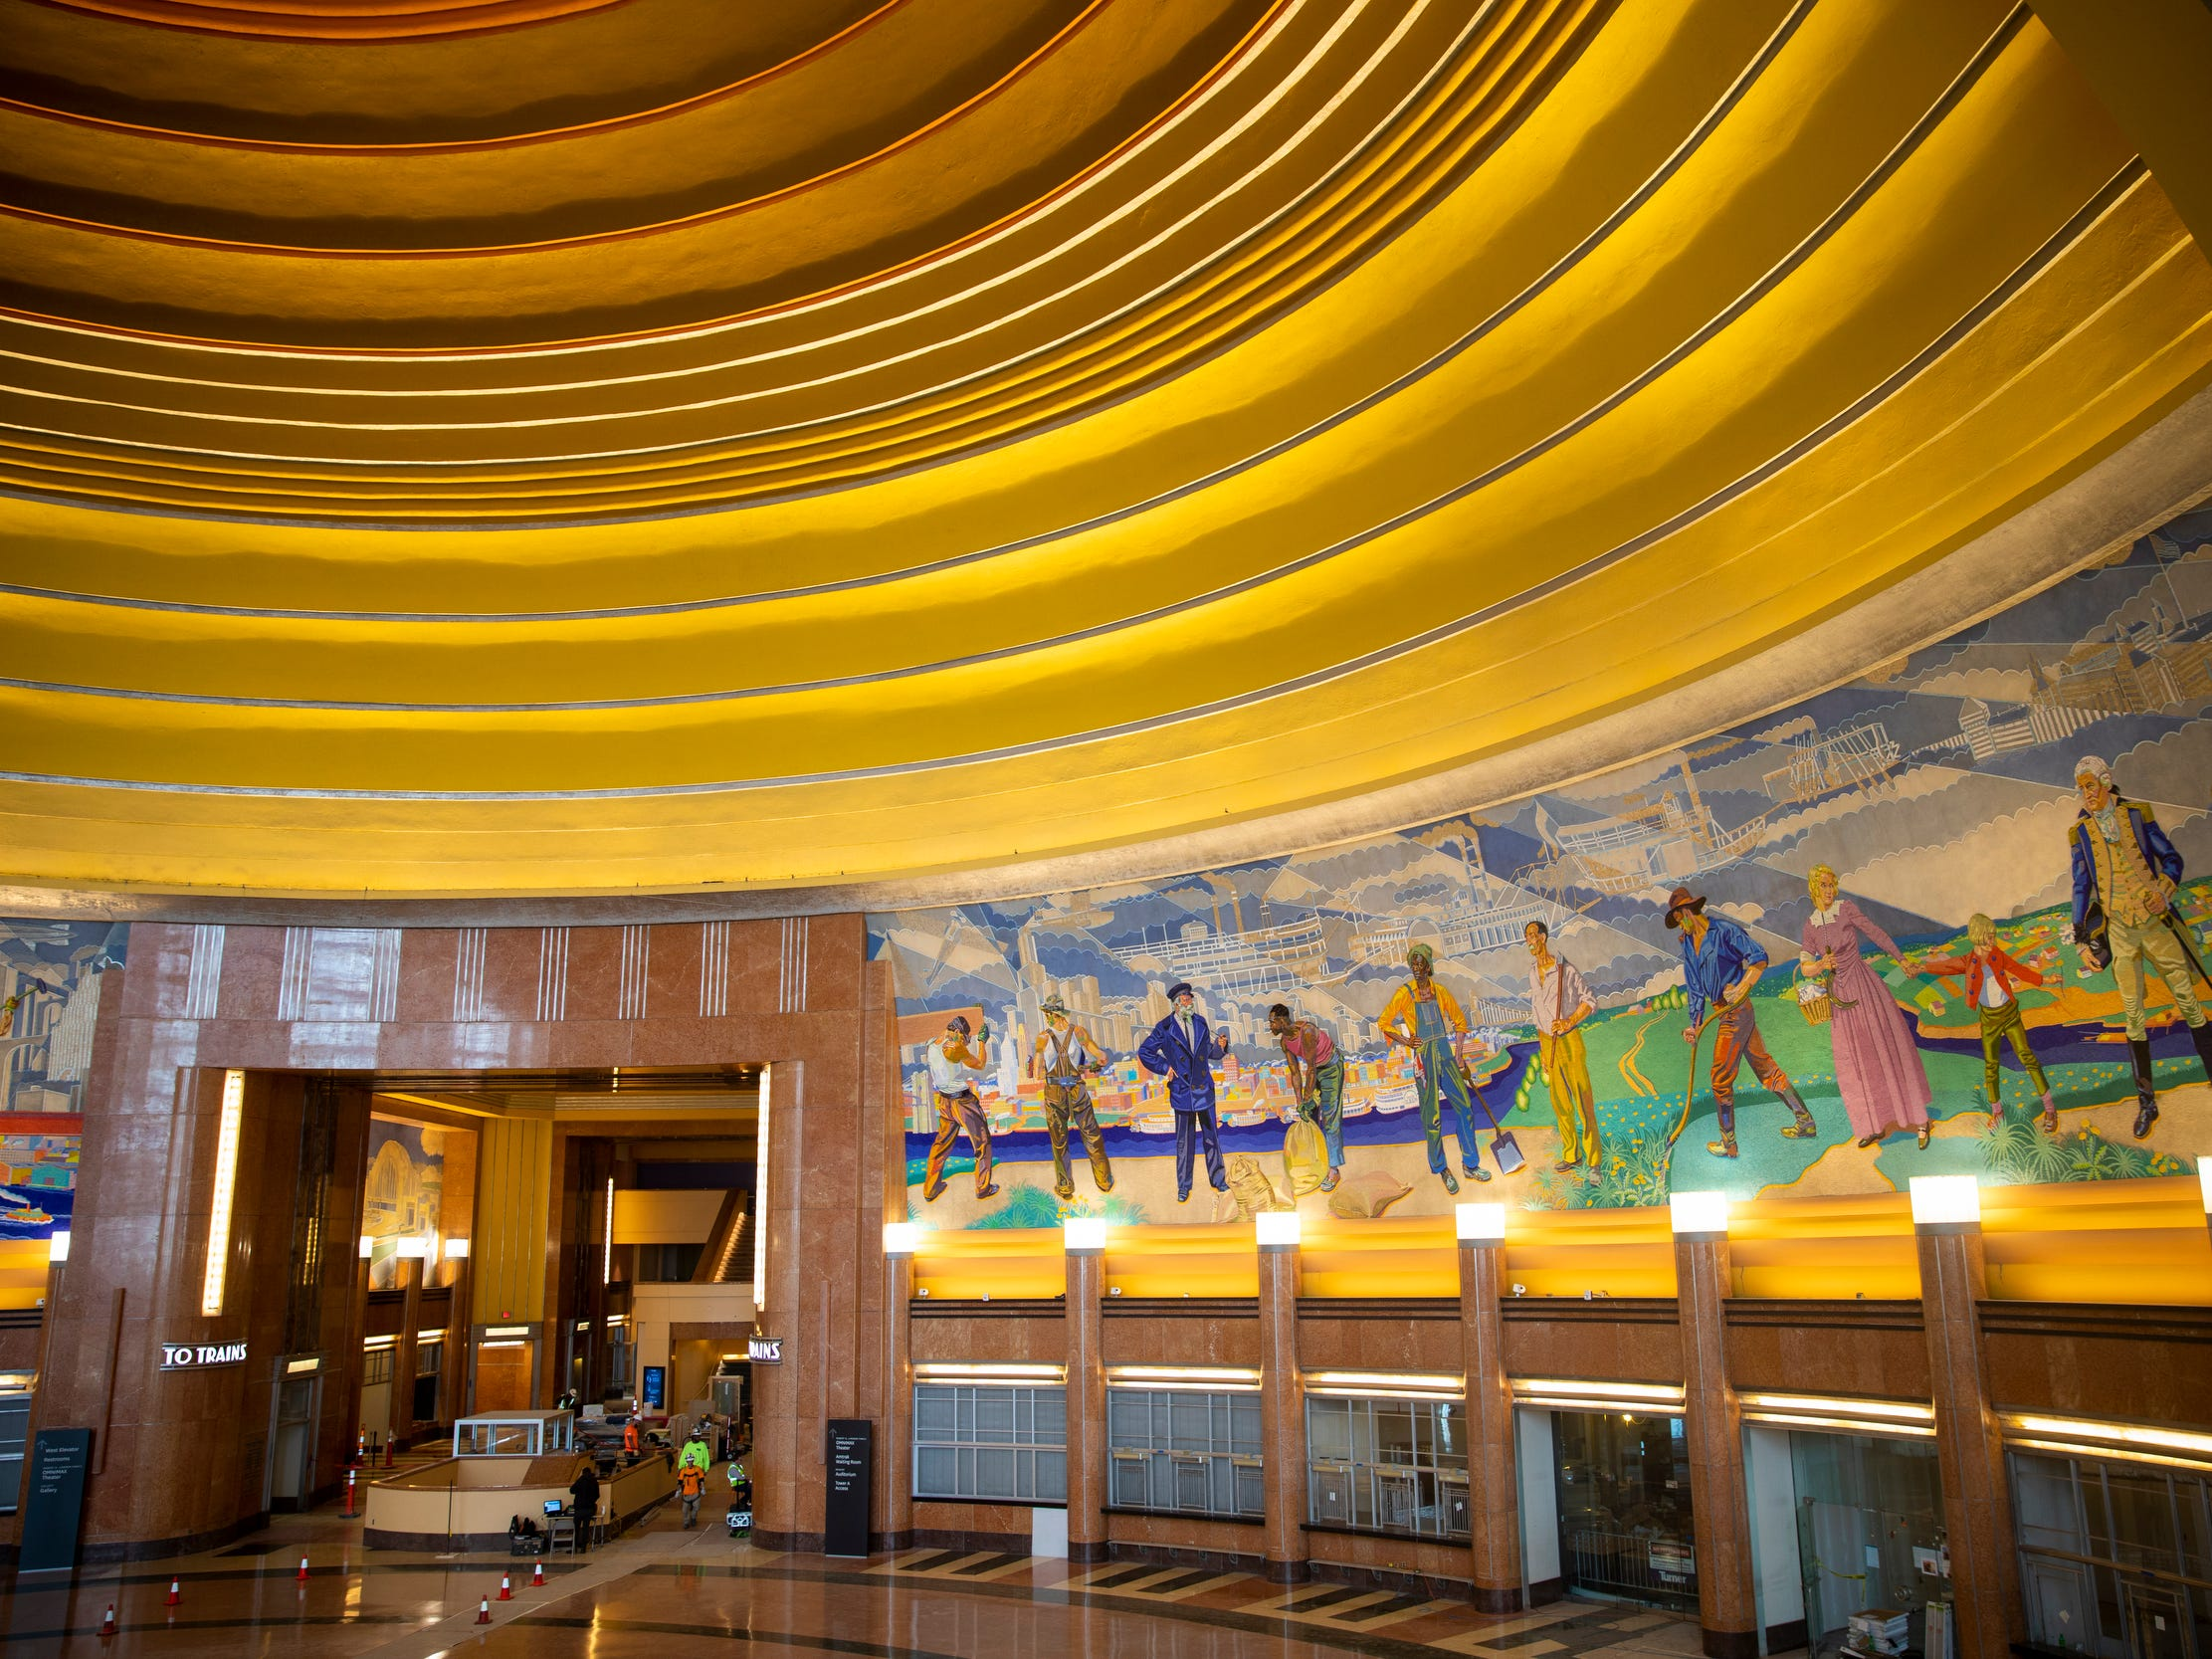 An icon, revived: Cincinnati Union Terminal to reopen after $228-million investment